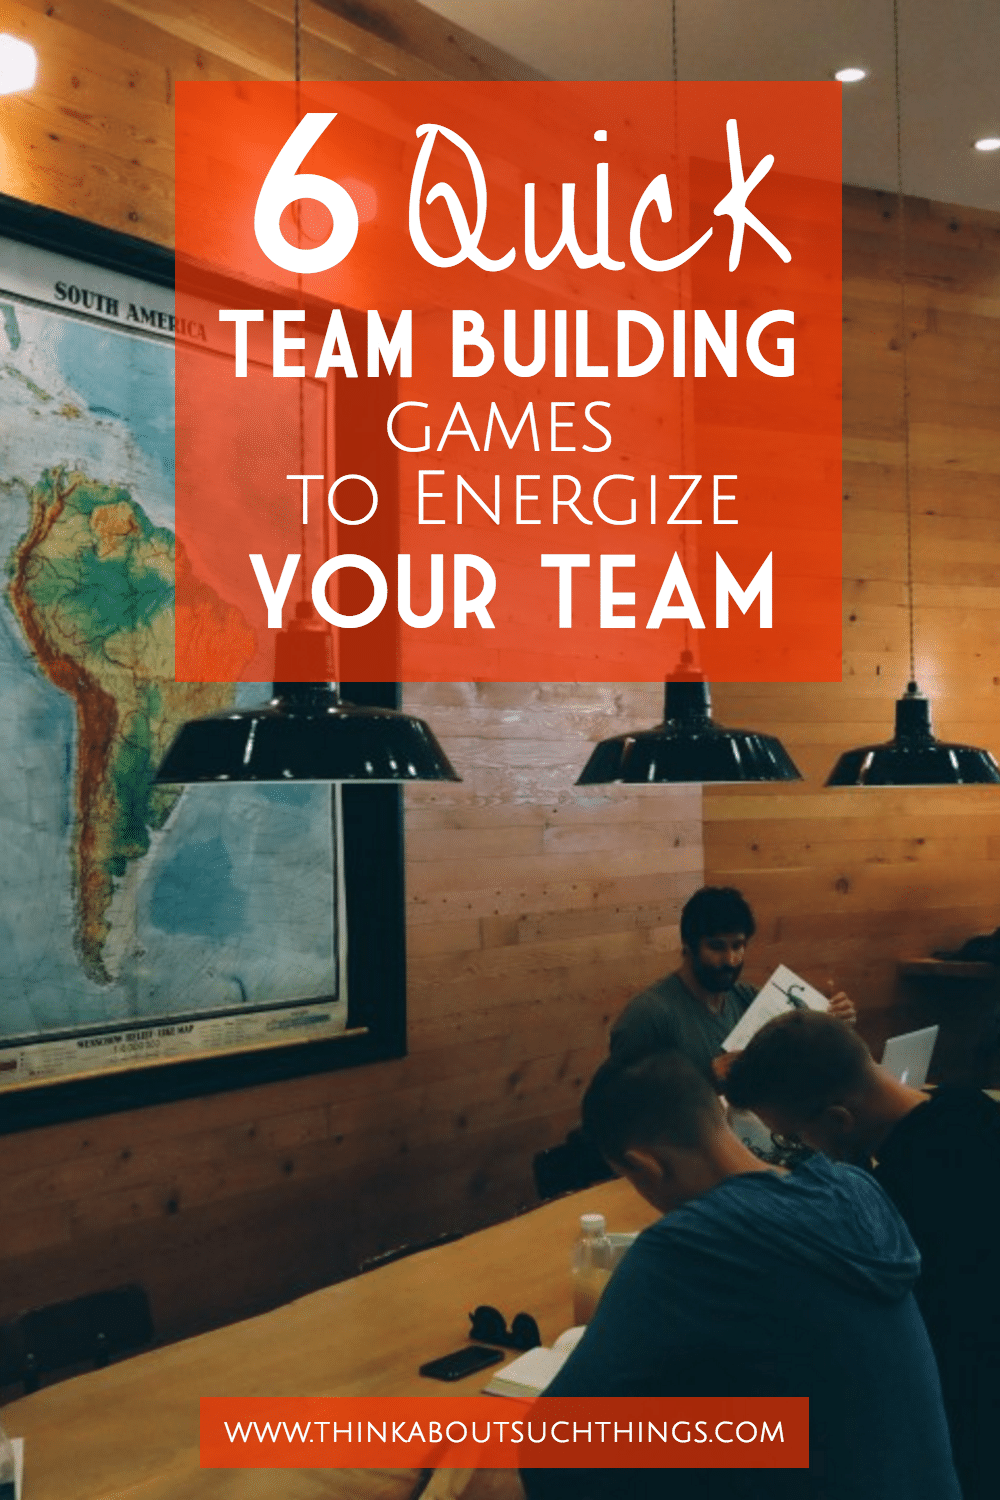 6 Quick Team Building Games To Energize Your Team Juegos